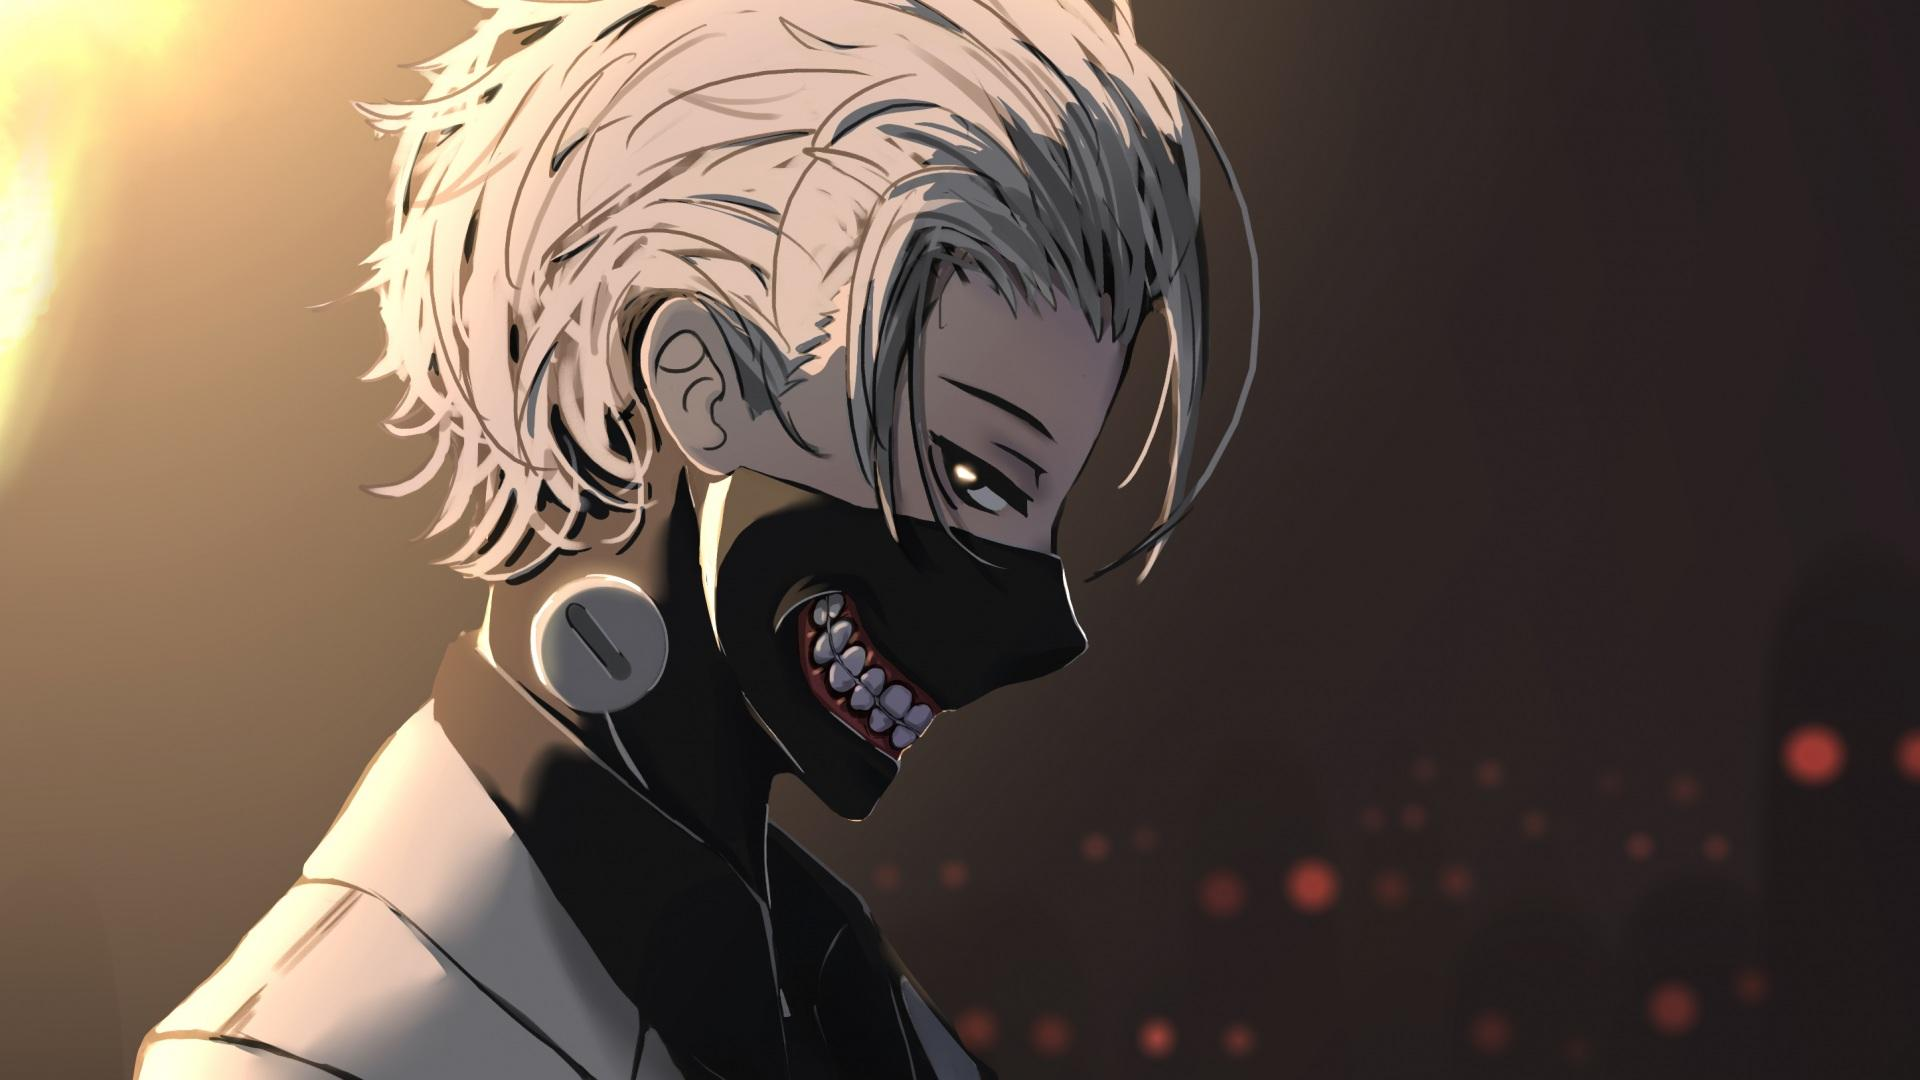 High Quality Anime Tokyo Ghoul Wallpapers - Wallpaper Cave